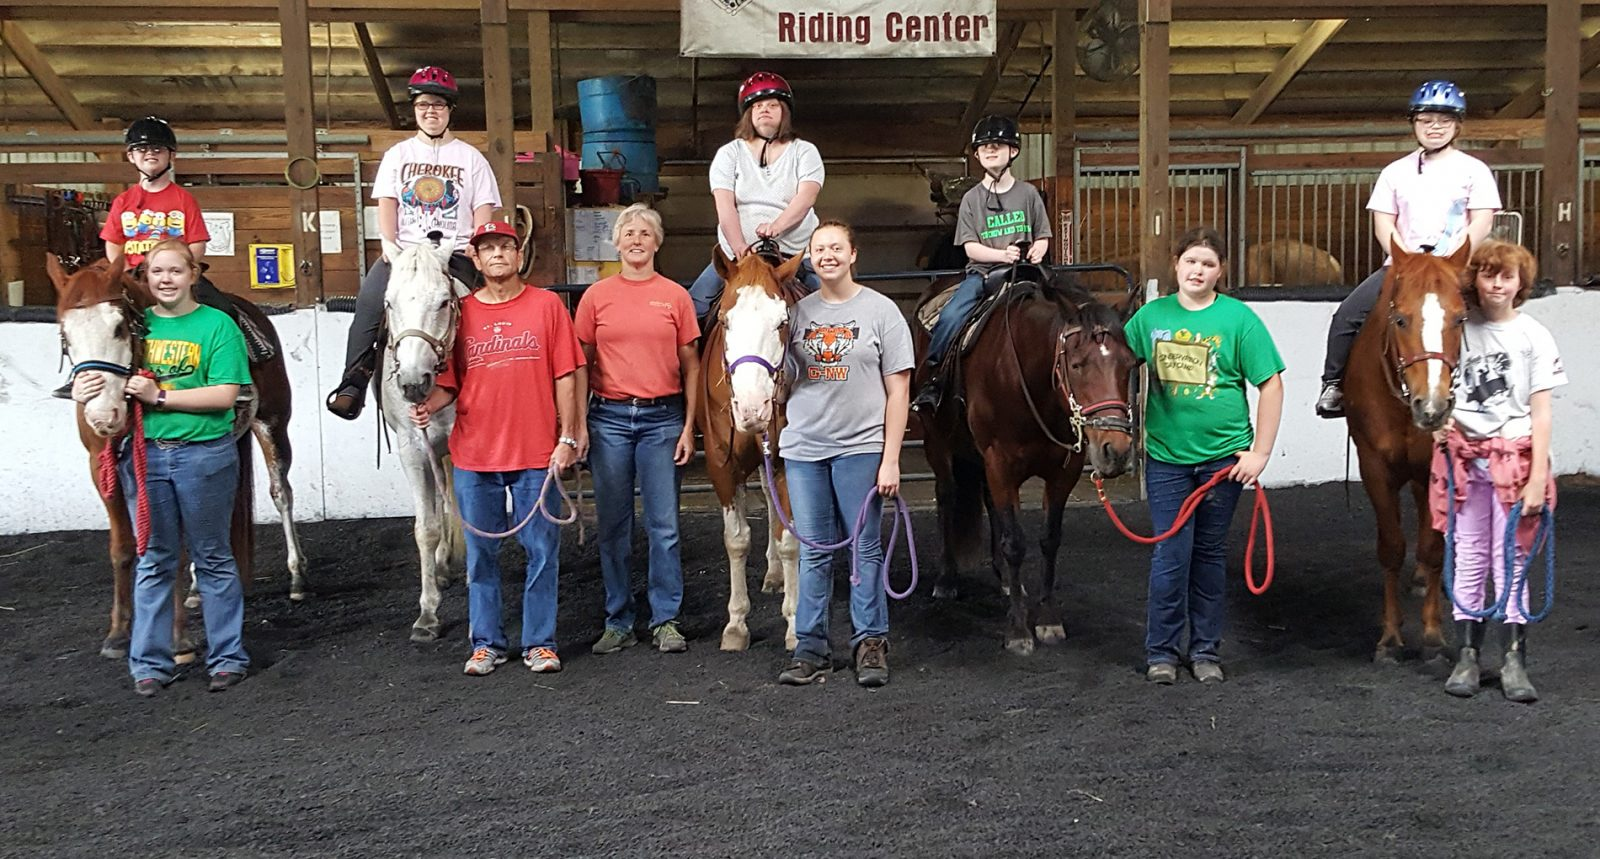 Equestrian Center at Beverly Farm. Group photo of the Downs Syndrome Camp